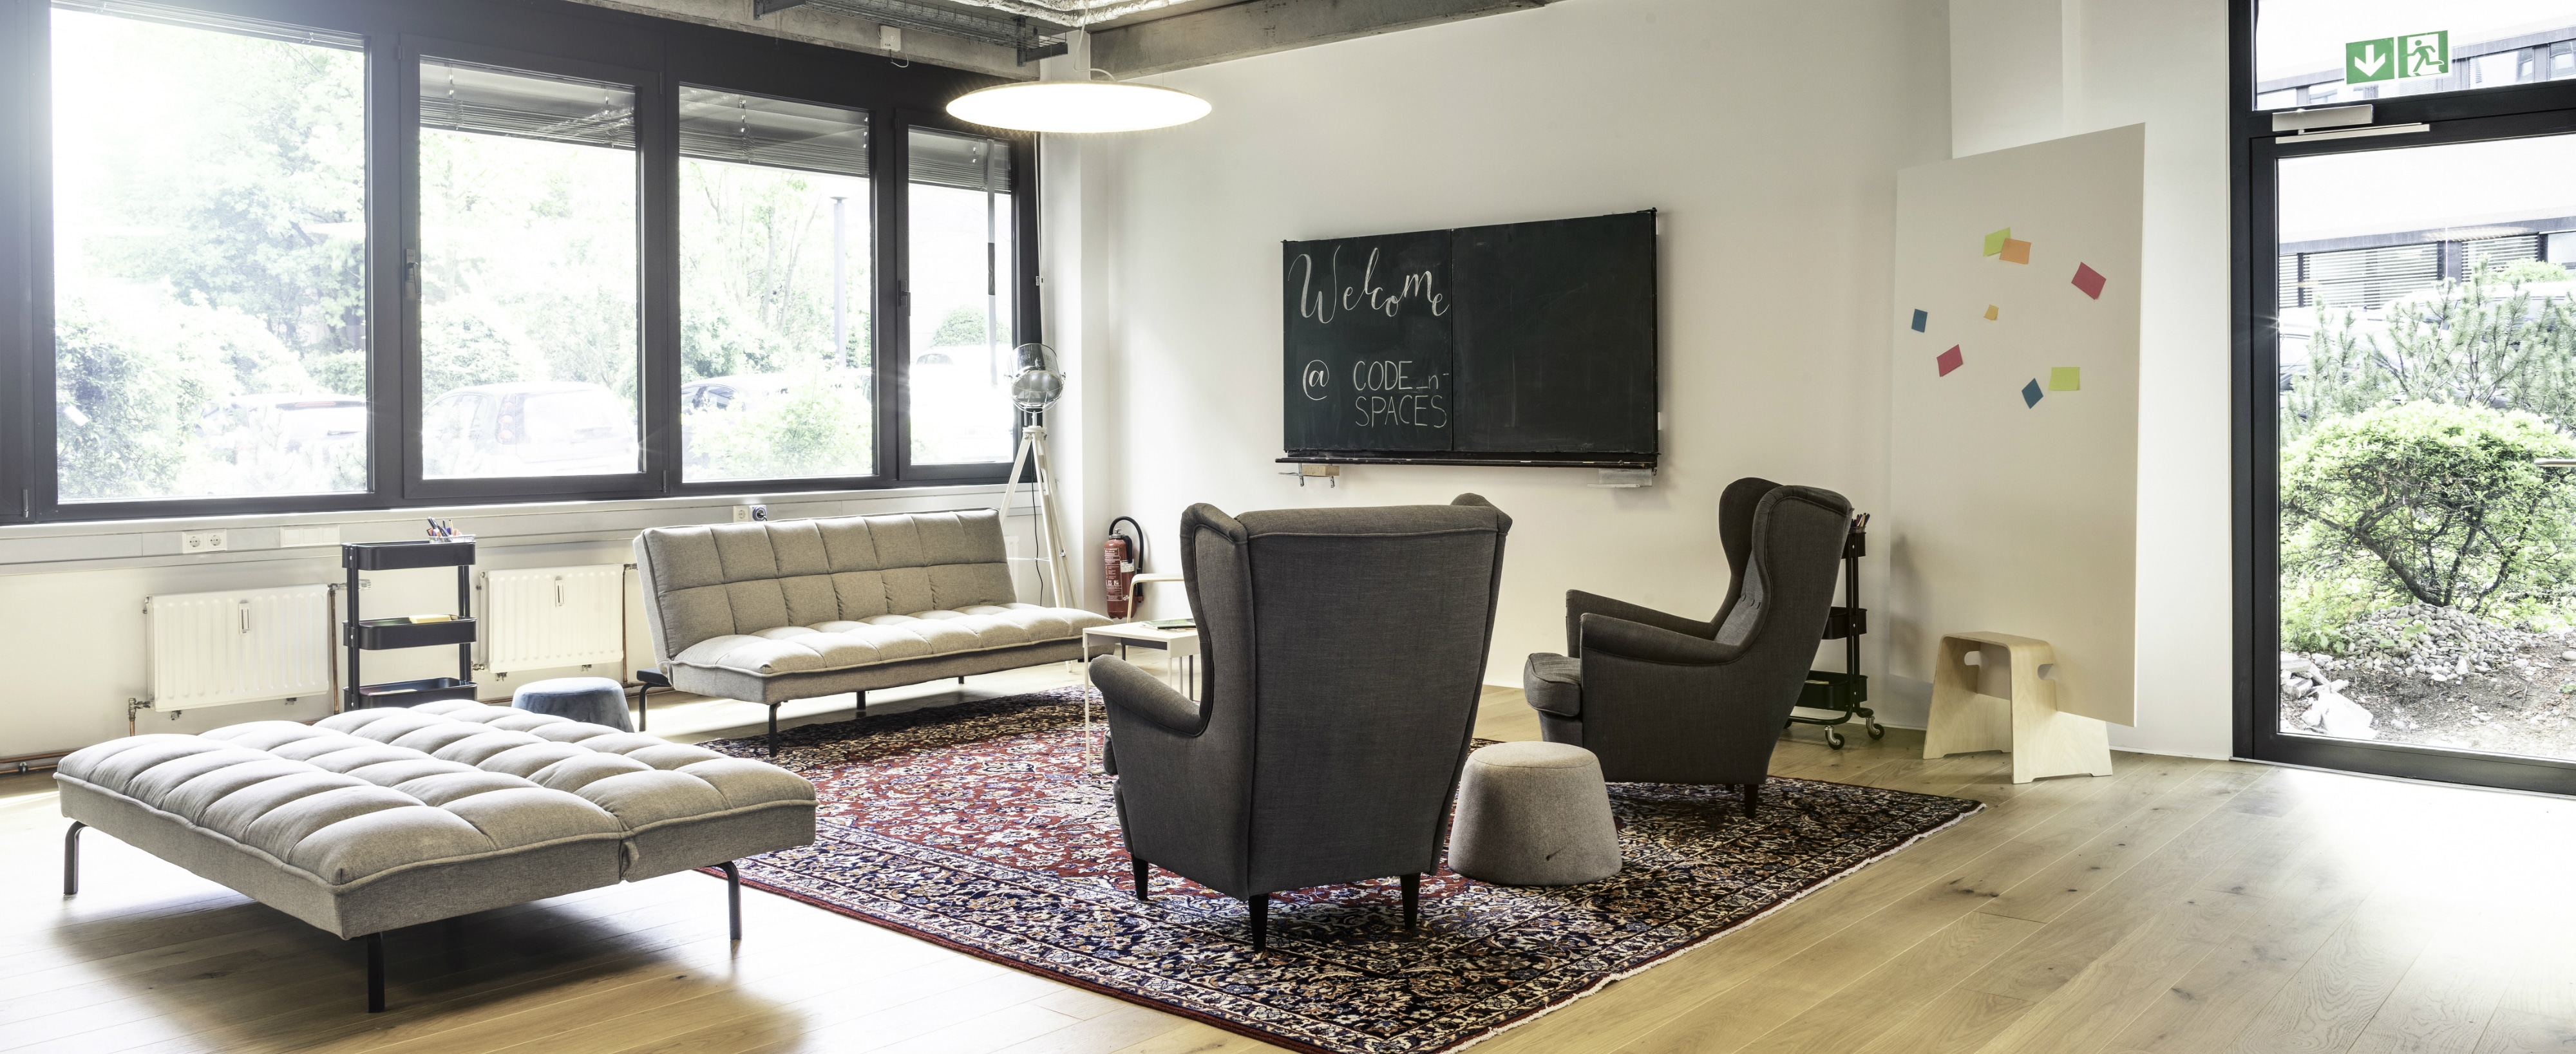 CODE_n SPACES Event Area, Lounge Corner with Blackboard